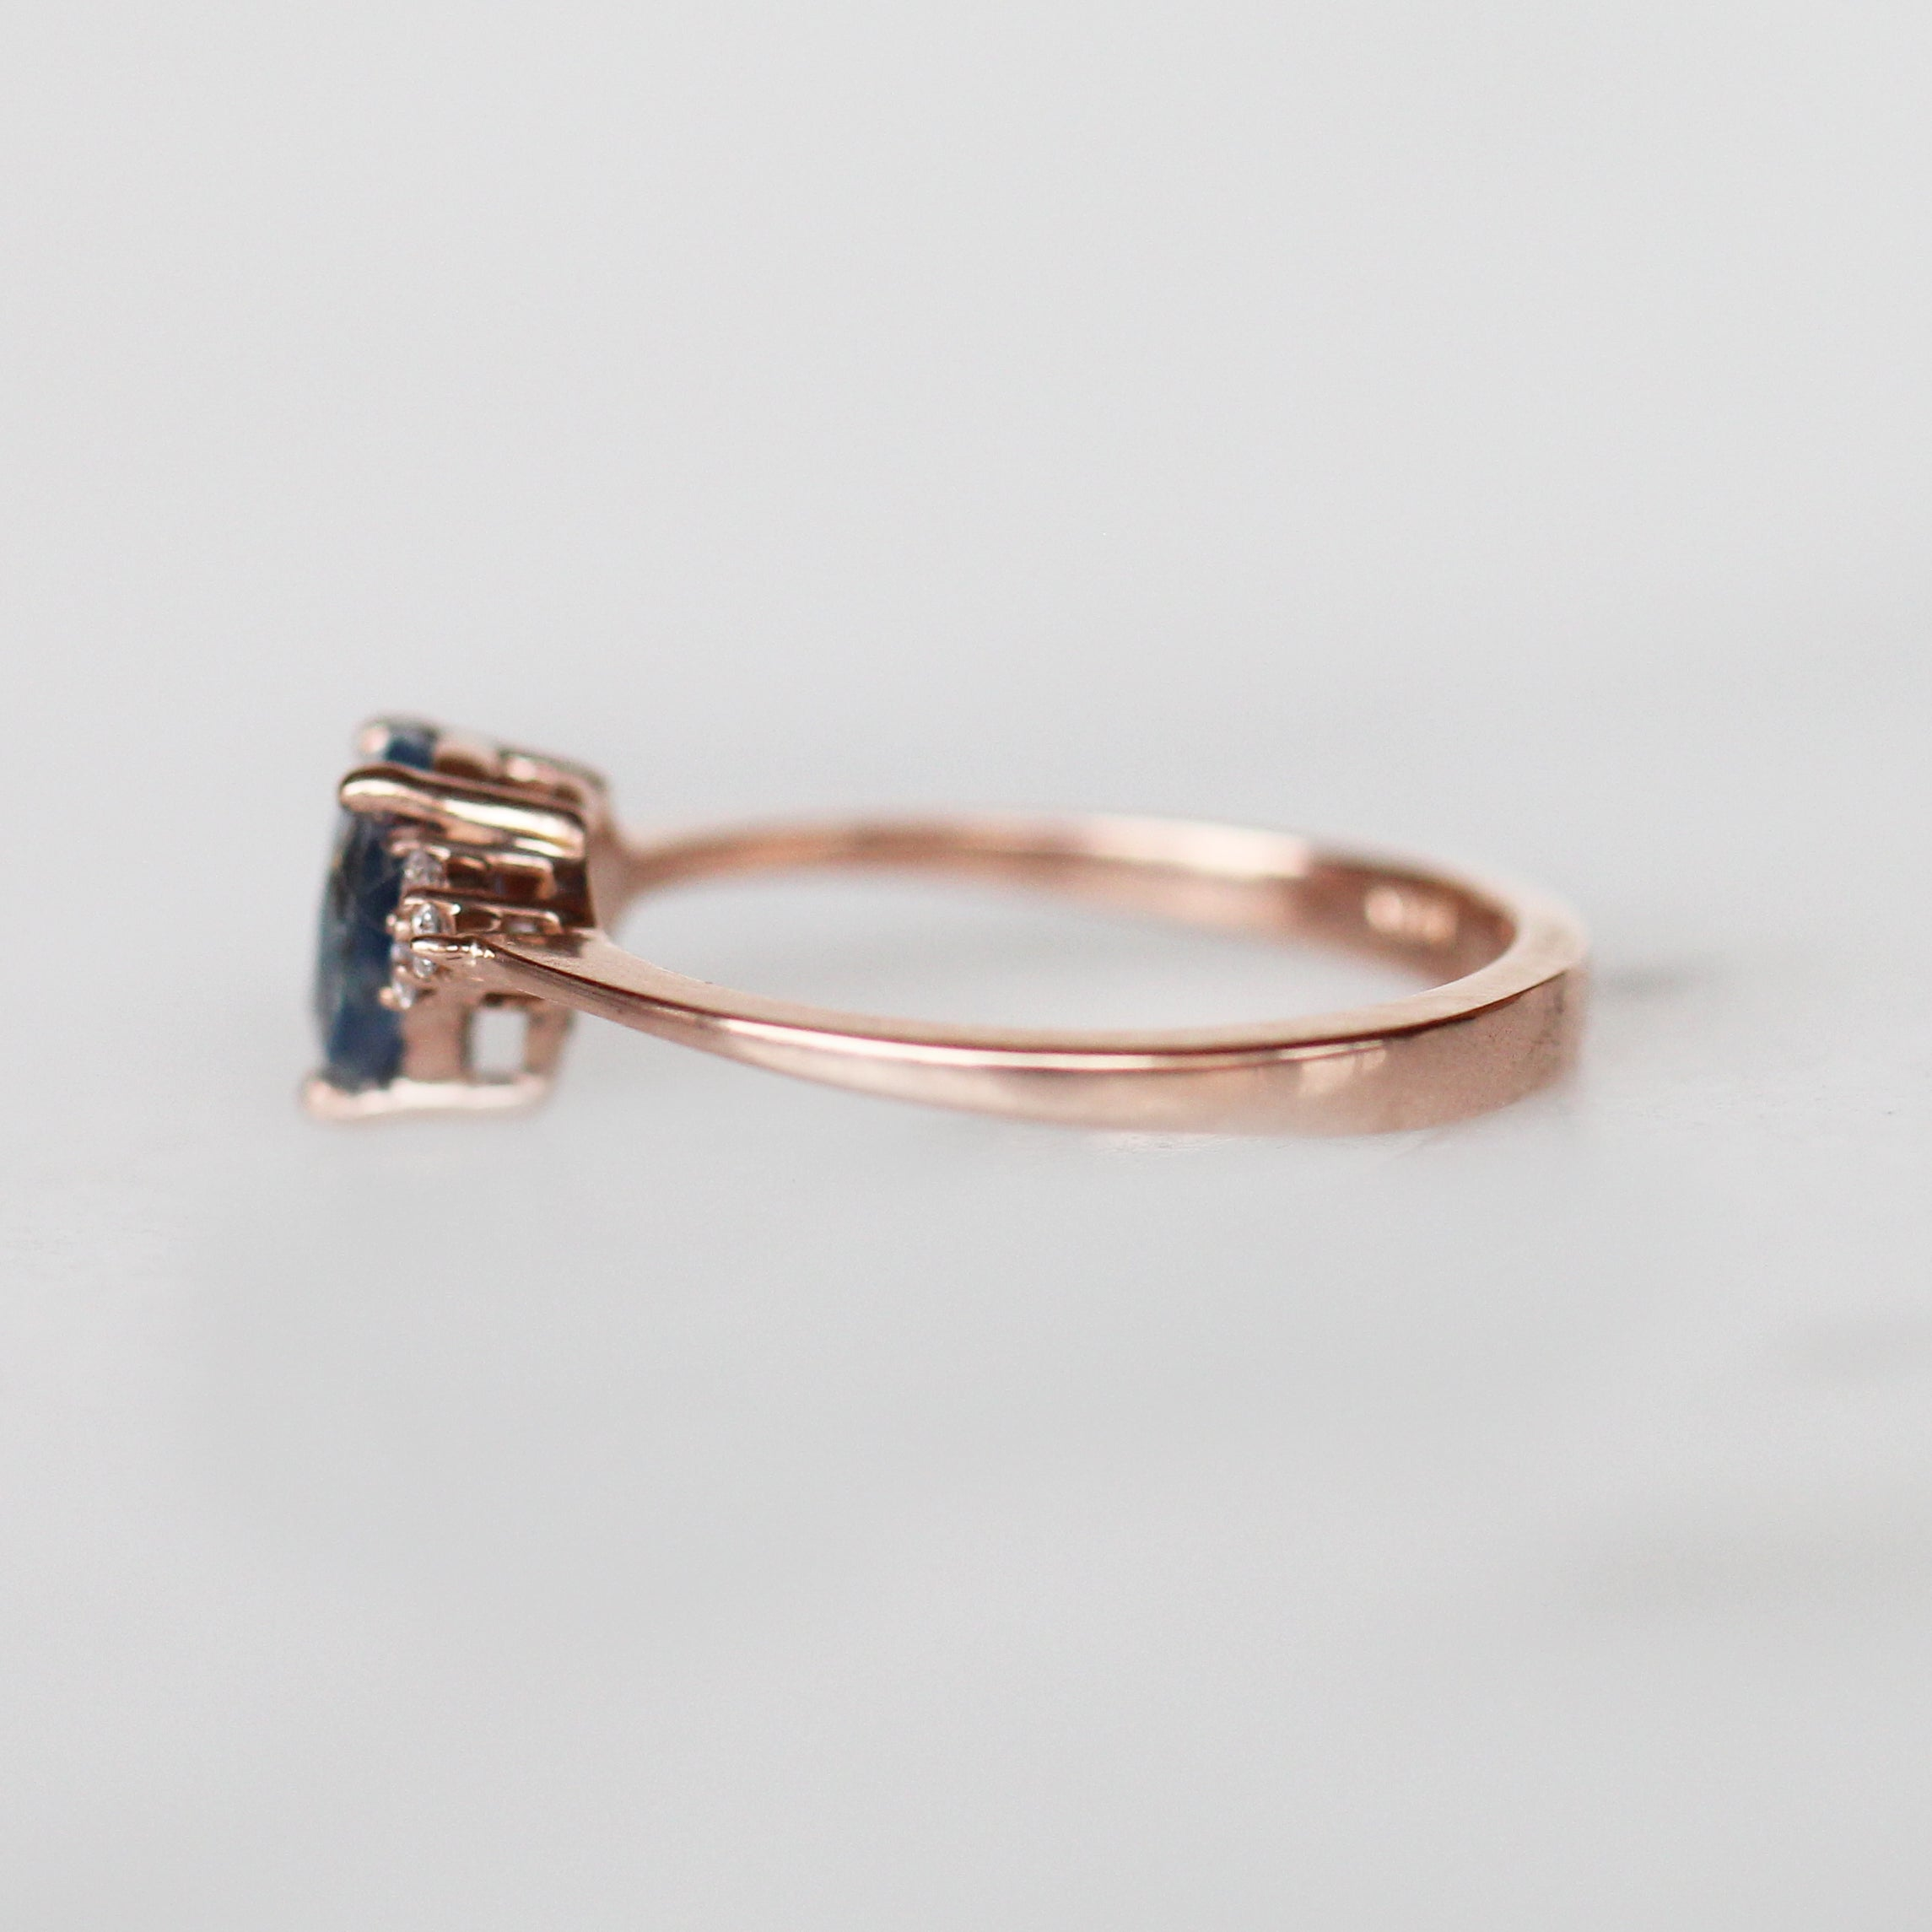 Imogene Ring with .79ct Pear Opalescent Sapphire In 14k Rose Gold- Ready to Size and Ship - Celestial Diamonds ® by Midwinter Co.